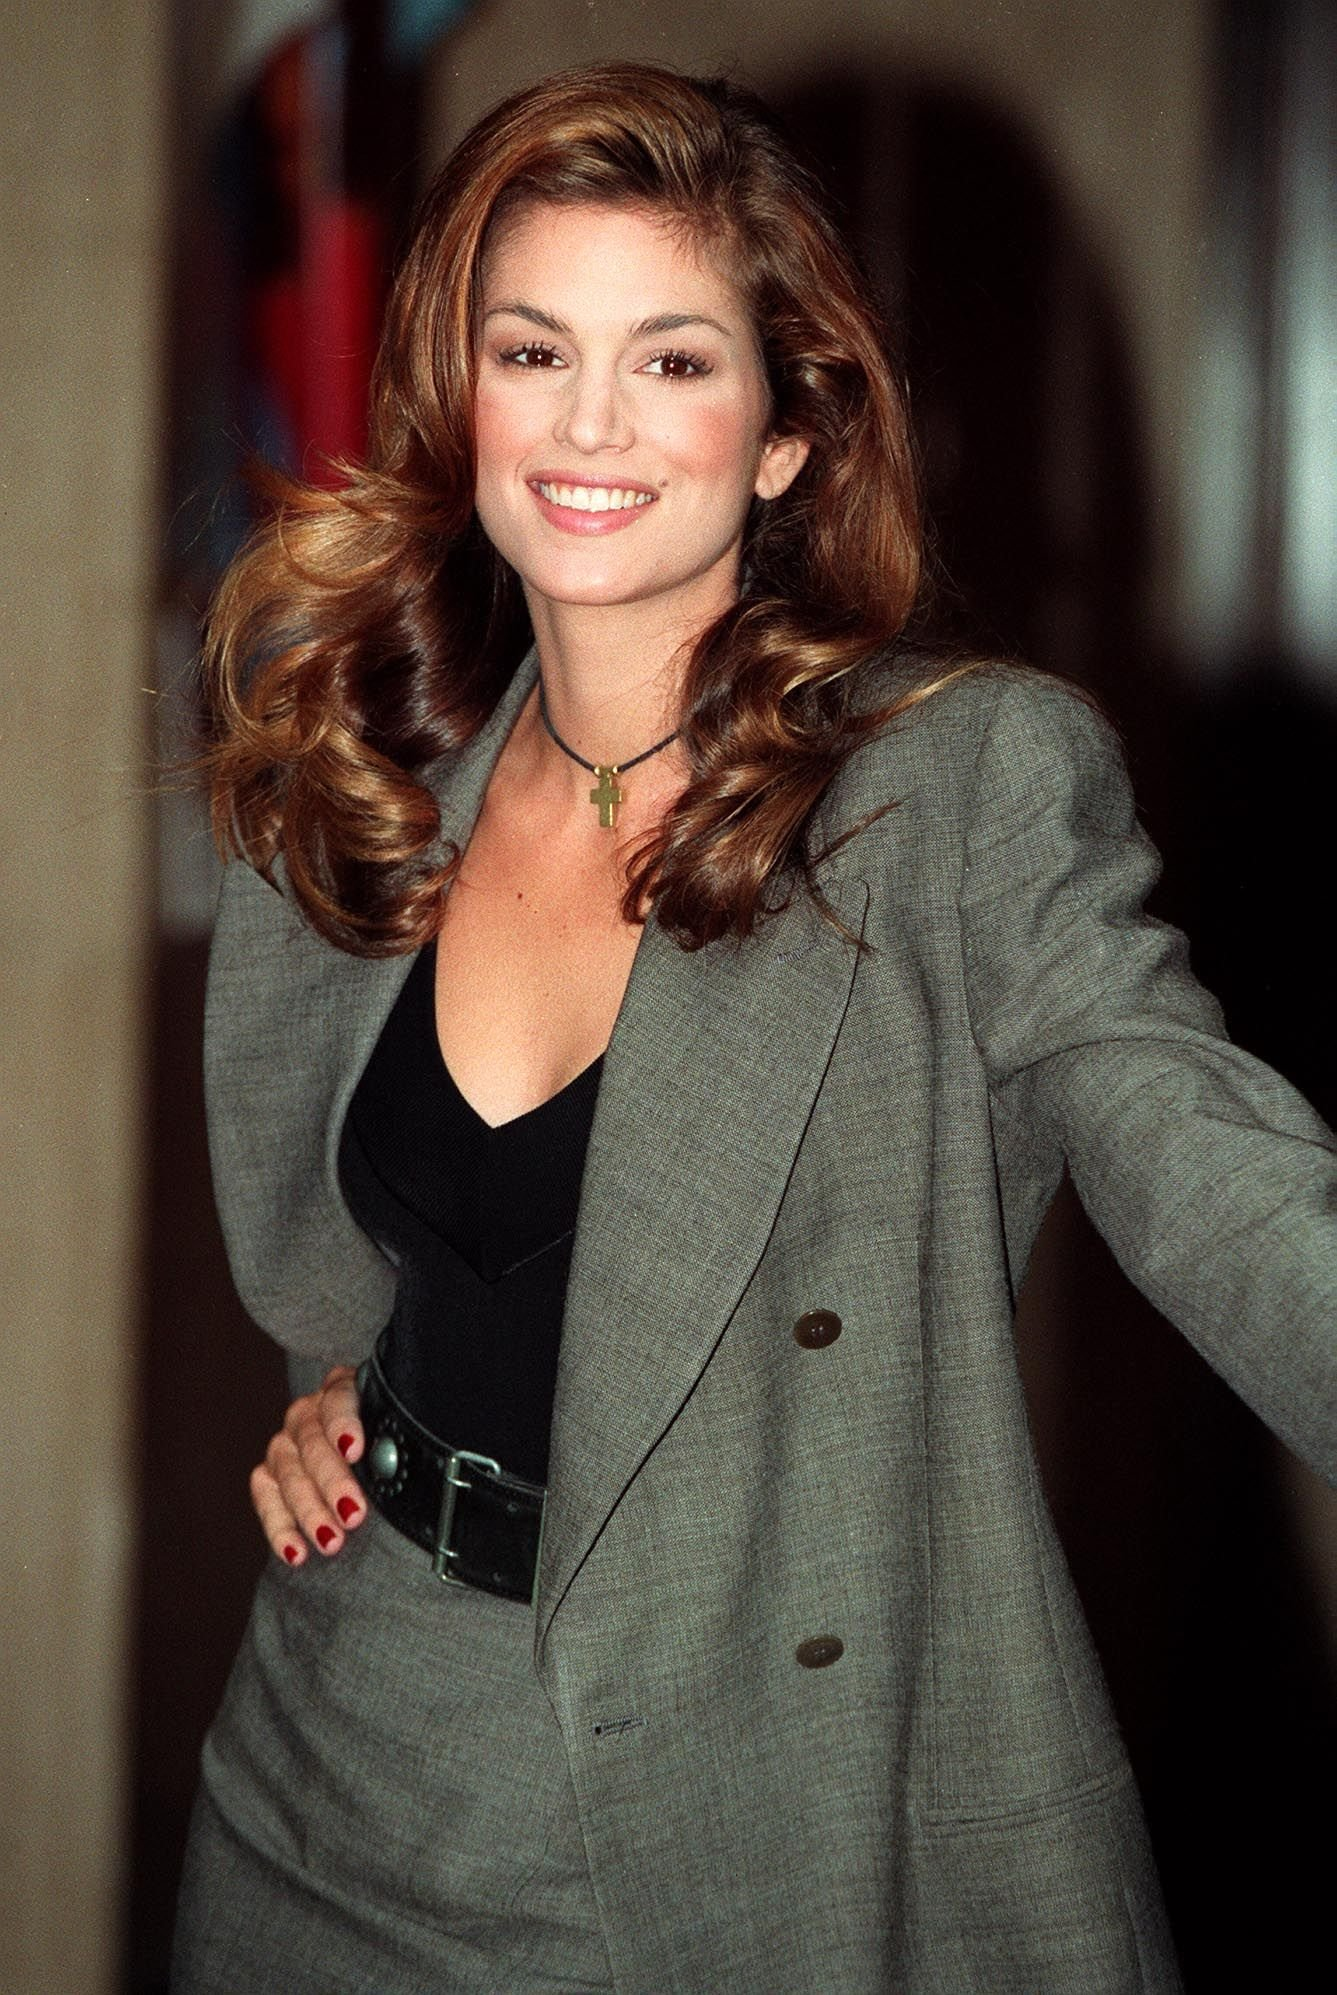 """Cindy Crawford in London for the launch of her keep fit video """"Cindy Crawford: Shape Your Body Workout"""" on November 02, 1992 